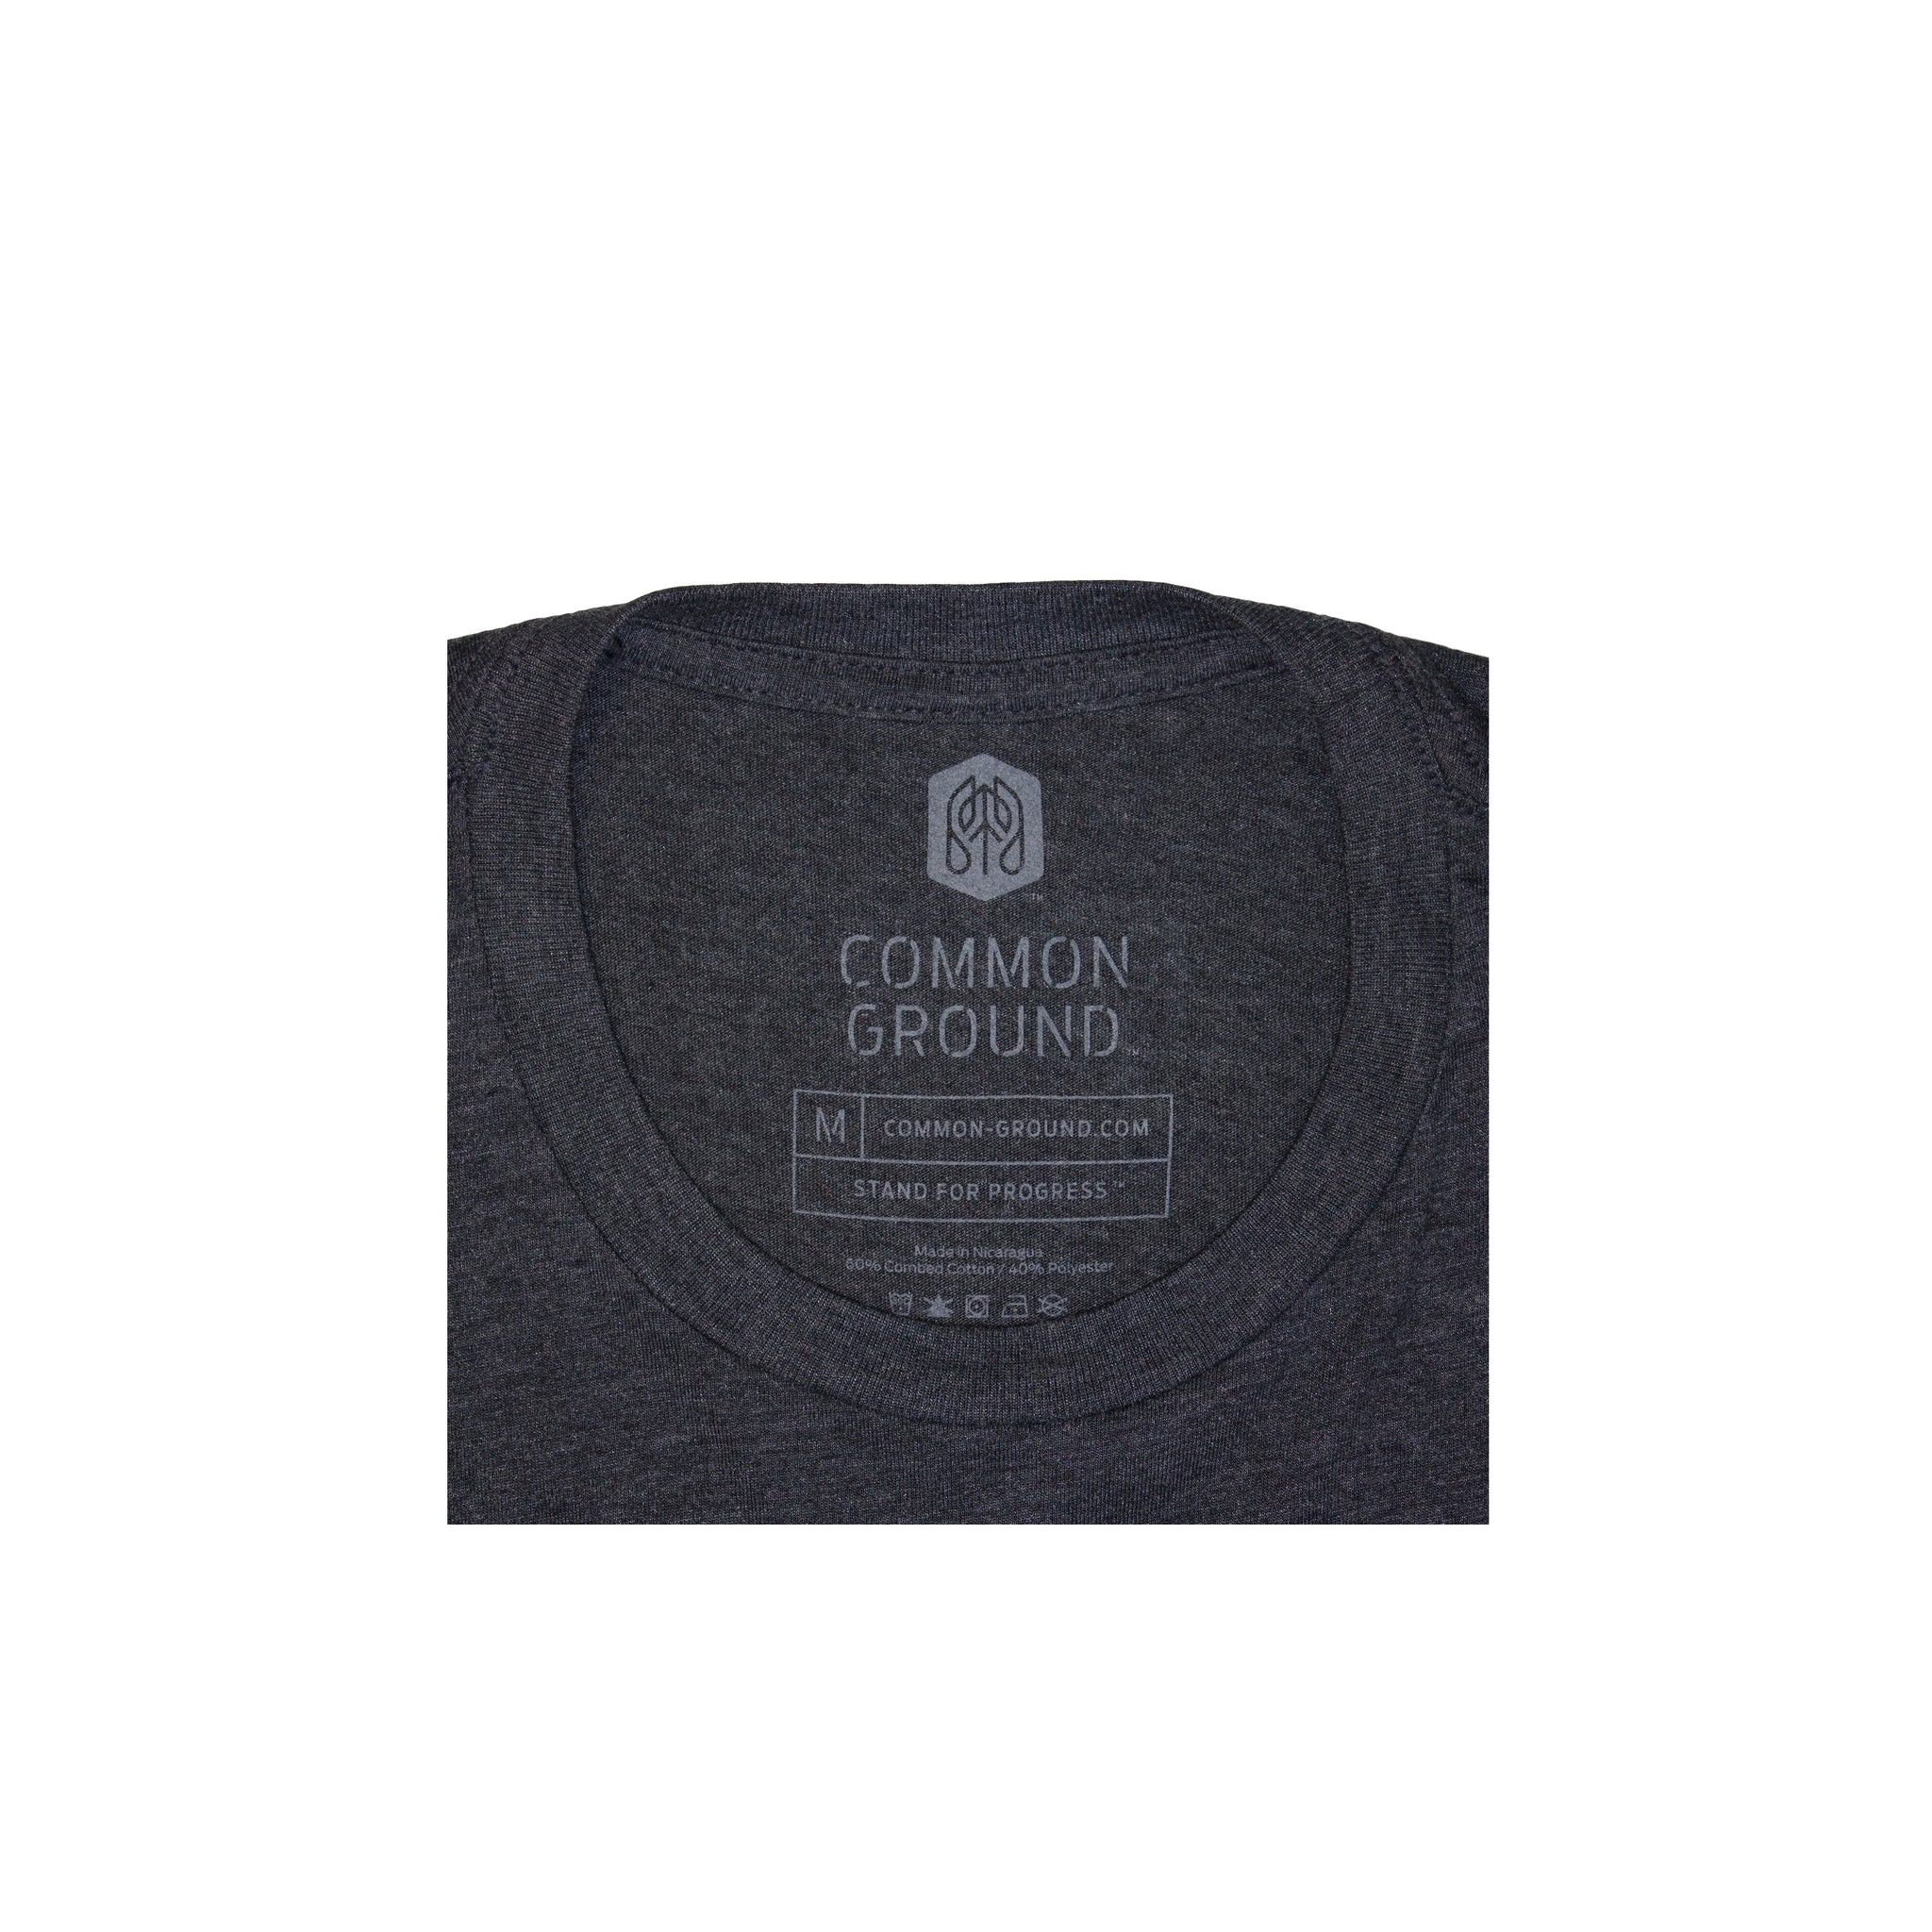 Charcoal -  Common Ground Badge T shirt Neck Tag View